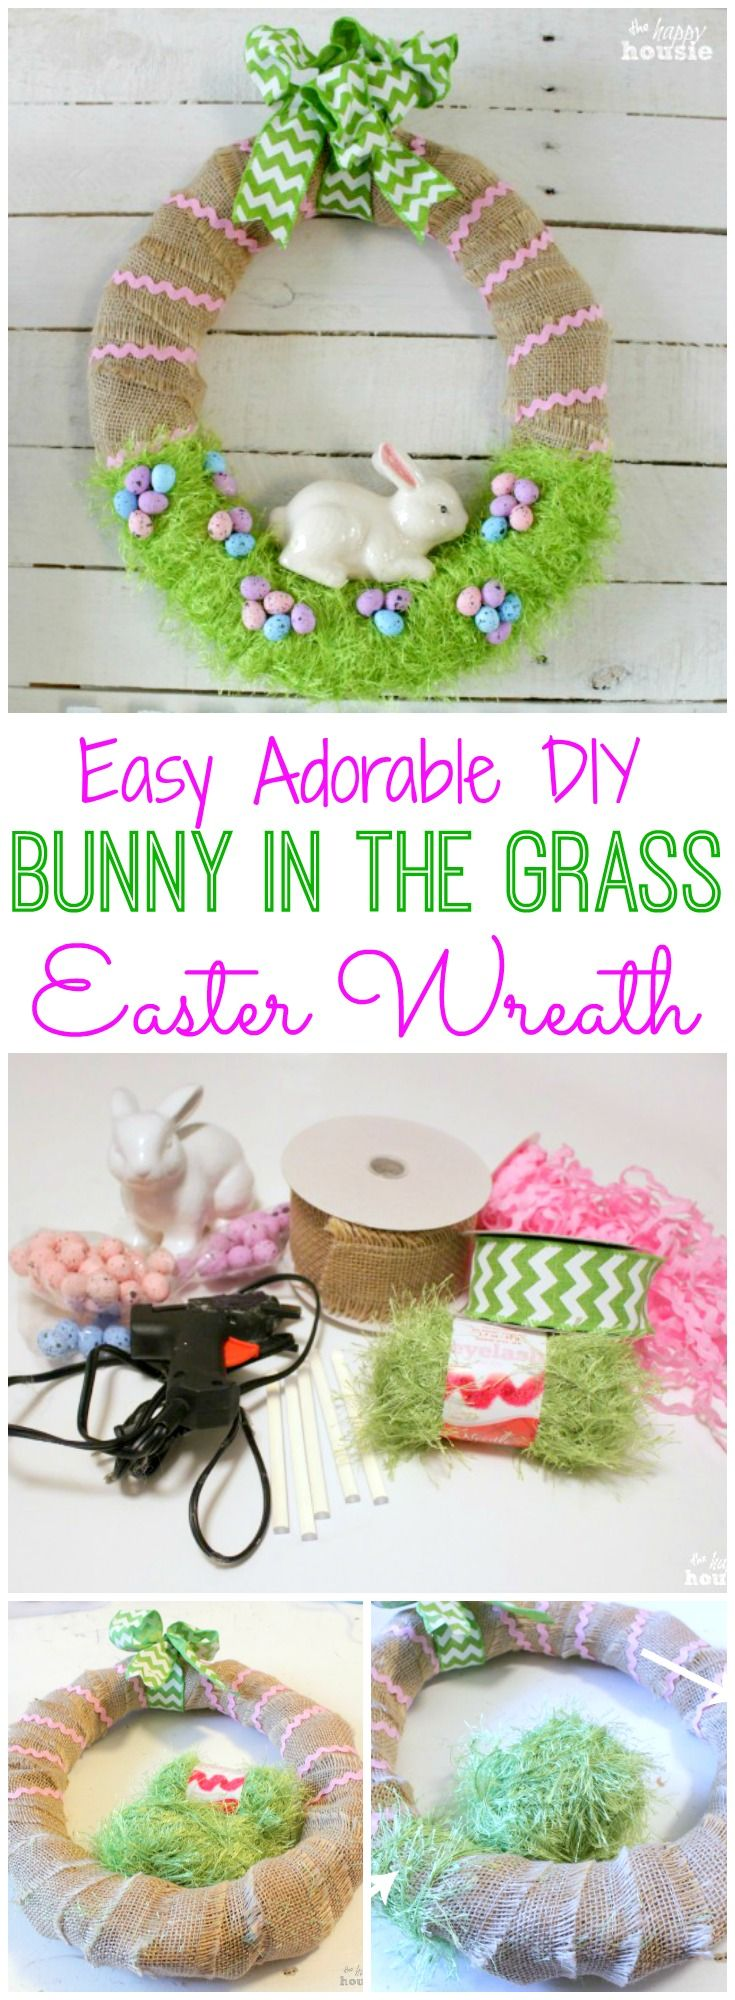 How to make an easy adorable DIY Bunny in the grass Easter Wreath or Spring Wreath at thehappyhousie.com